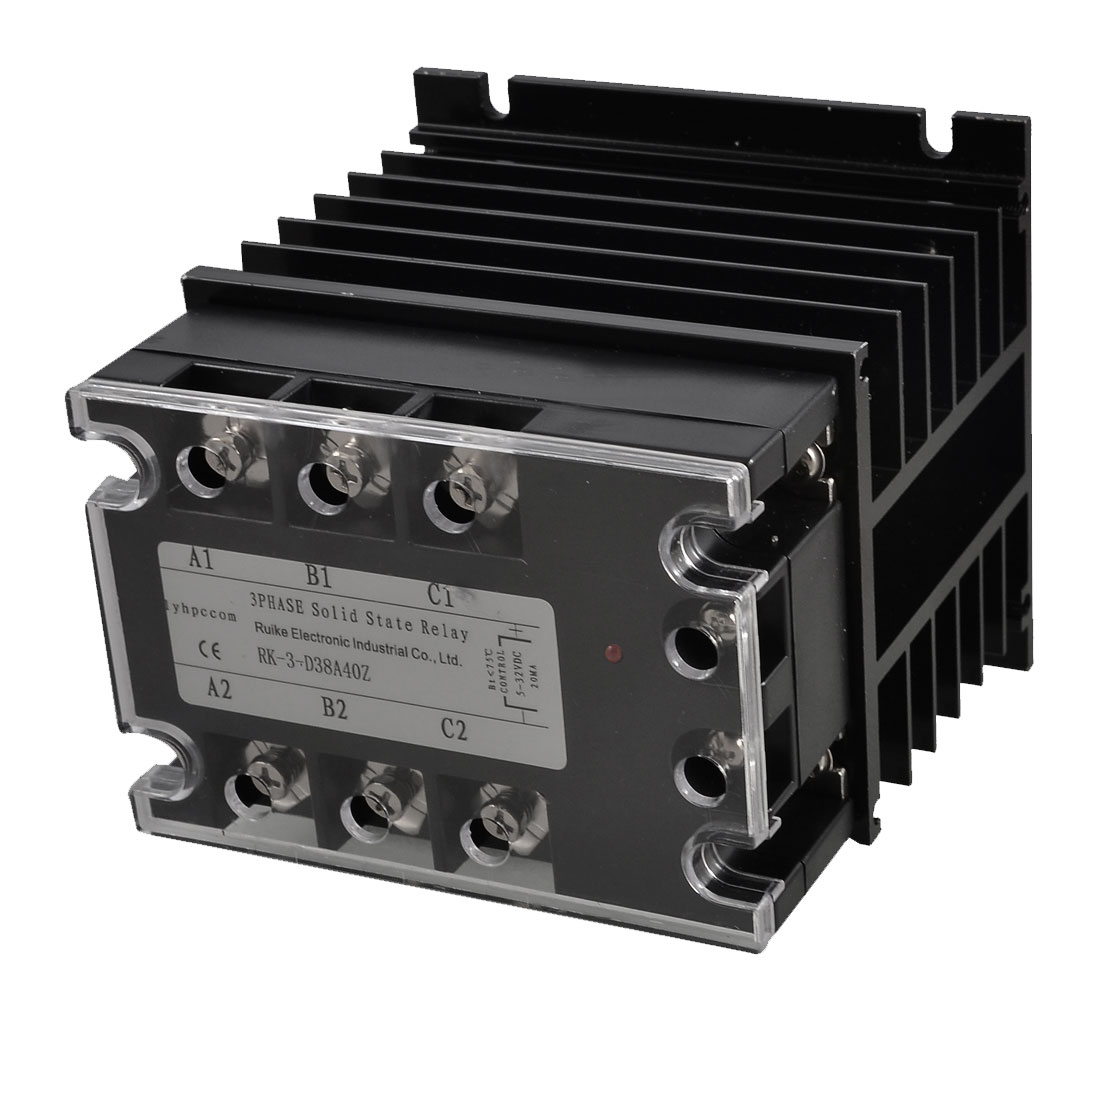 DC 5-32V to AC 380V 40A 3 Phase SSR Solid State Relay + Black Heat Sink